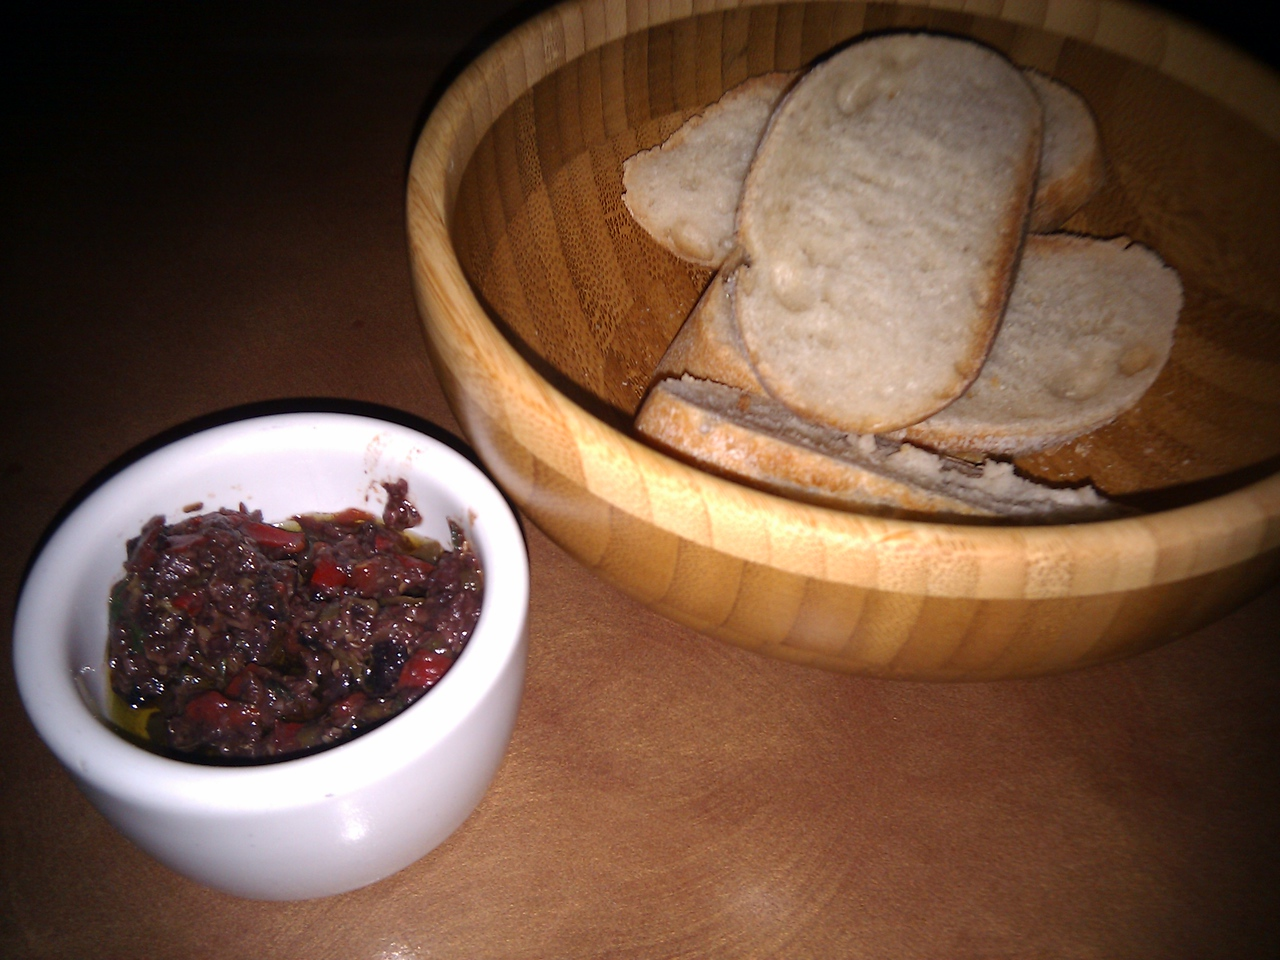 Fresca - Bread with Olive Tampanade